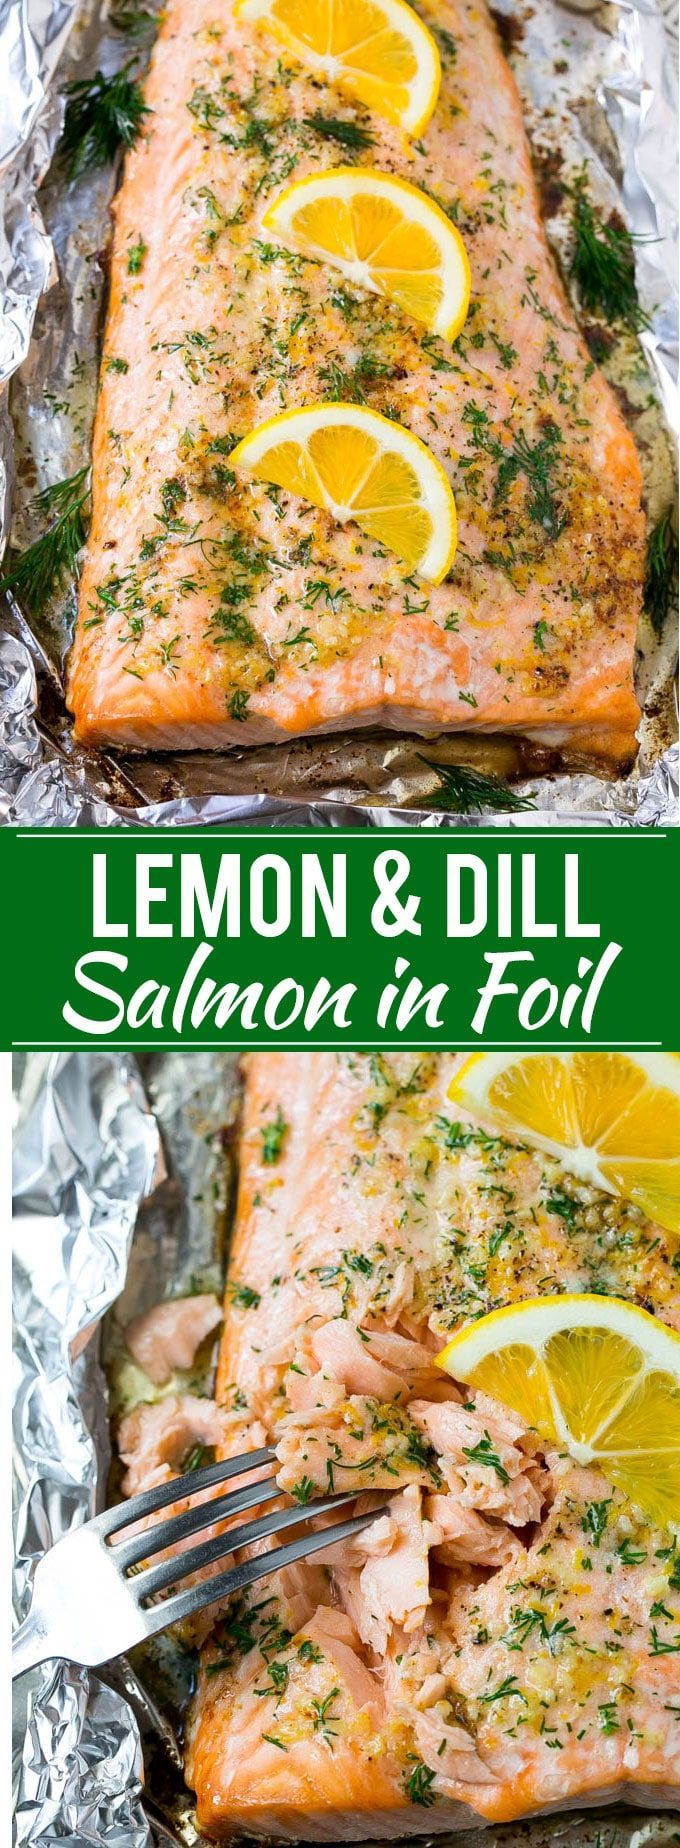 Salmon in Foil with Lemon and Dill Recipe | Foil Wrapped Salmon | Baked Salmon | Easy Salmon Recipe | Lemon and Dill Salmon  | #HealthyEating #CleanEating #Salmon Sherman Financial Group